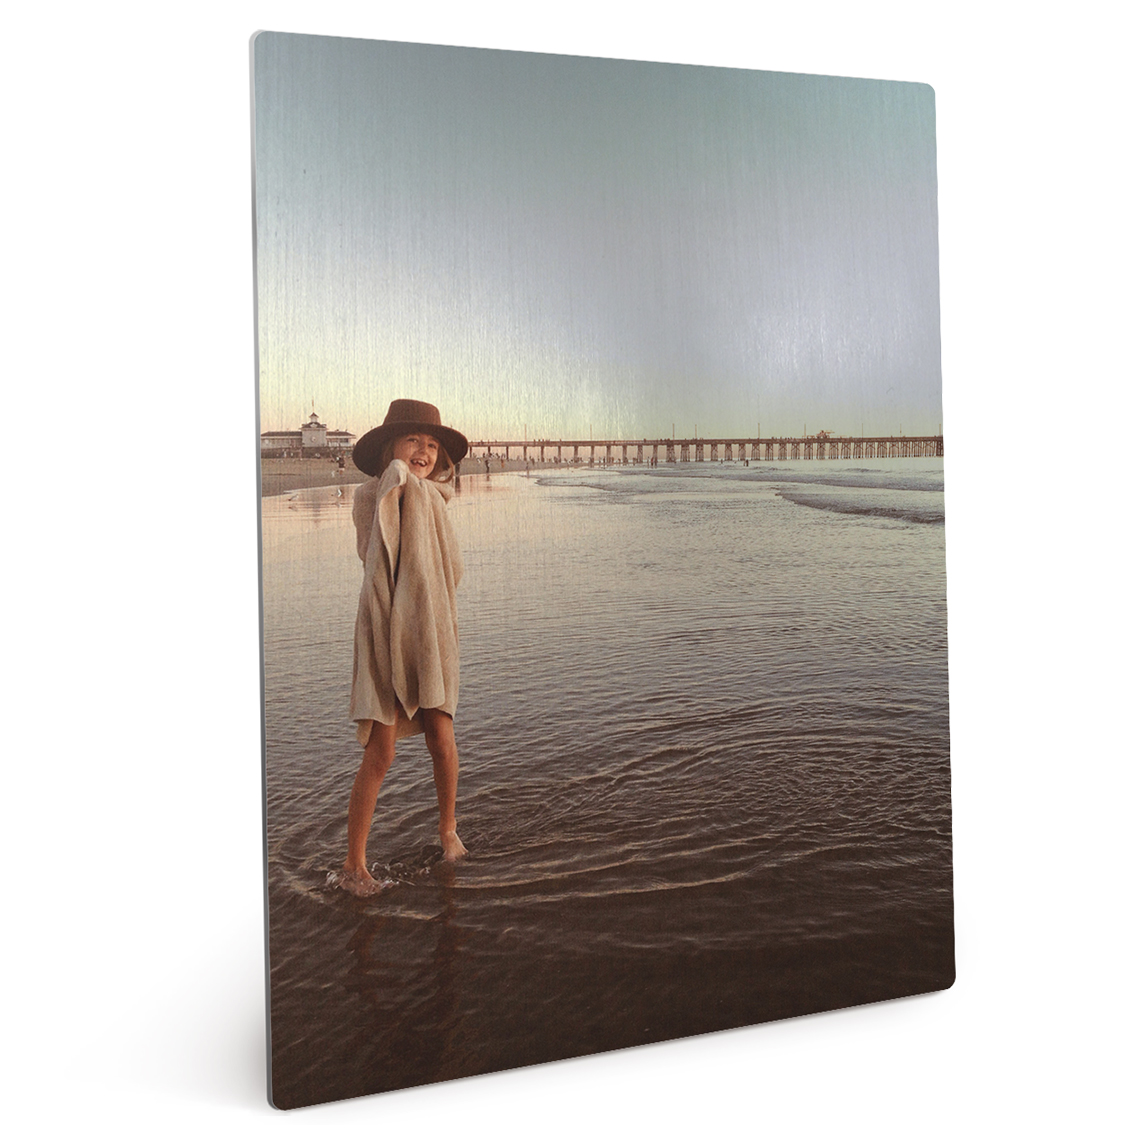 Metal easel prints